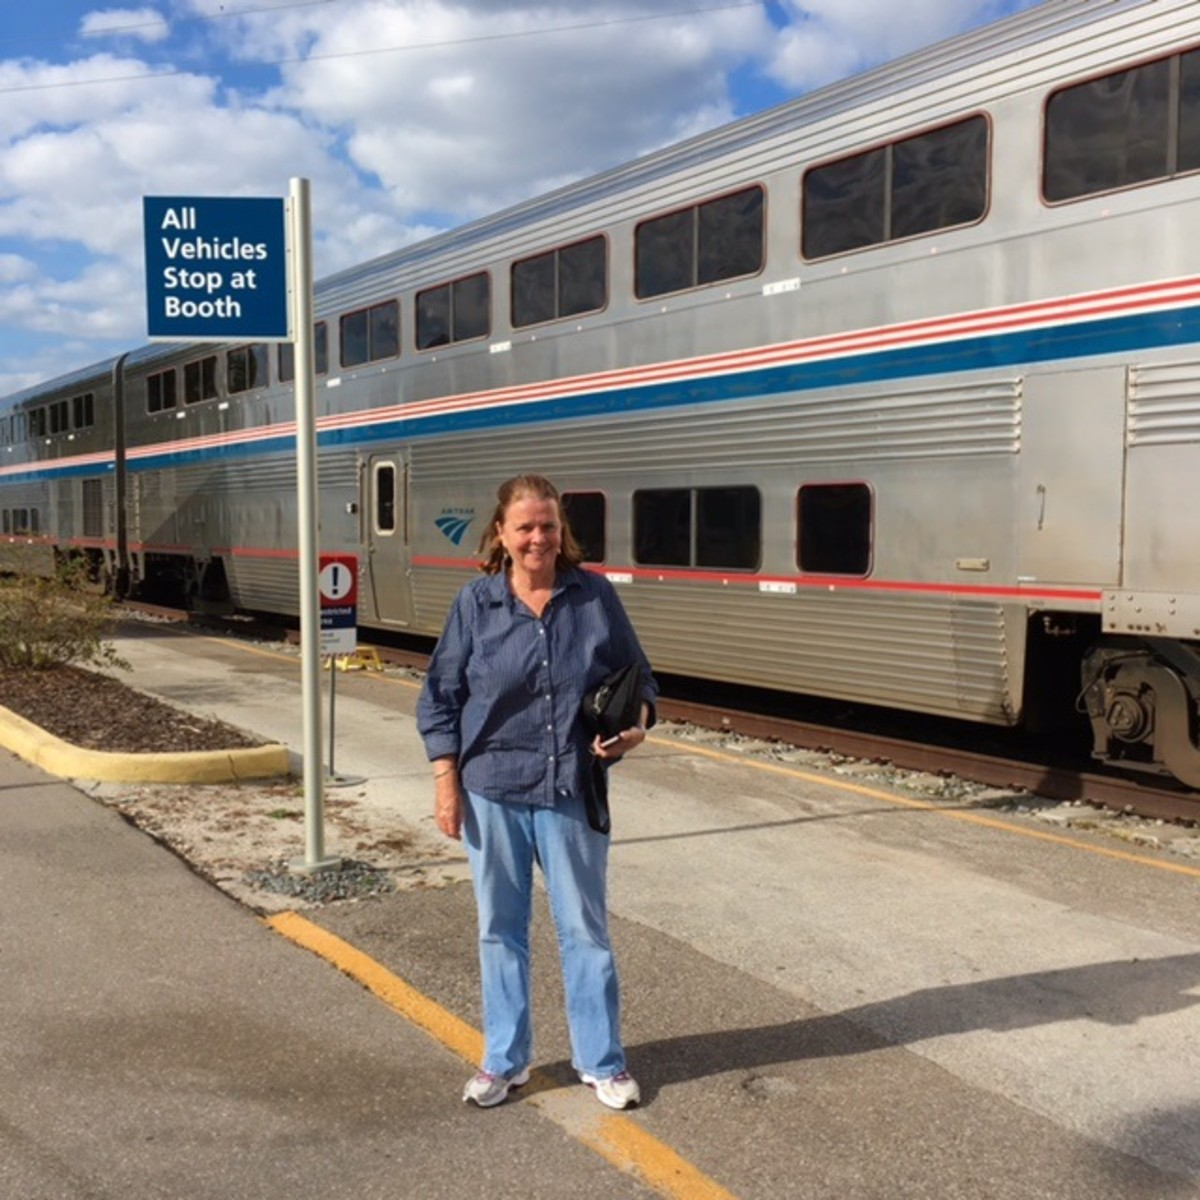 Auto Train from Sanford, FL to Lorton, VA